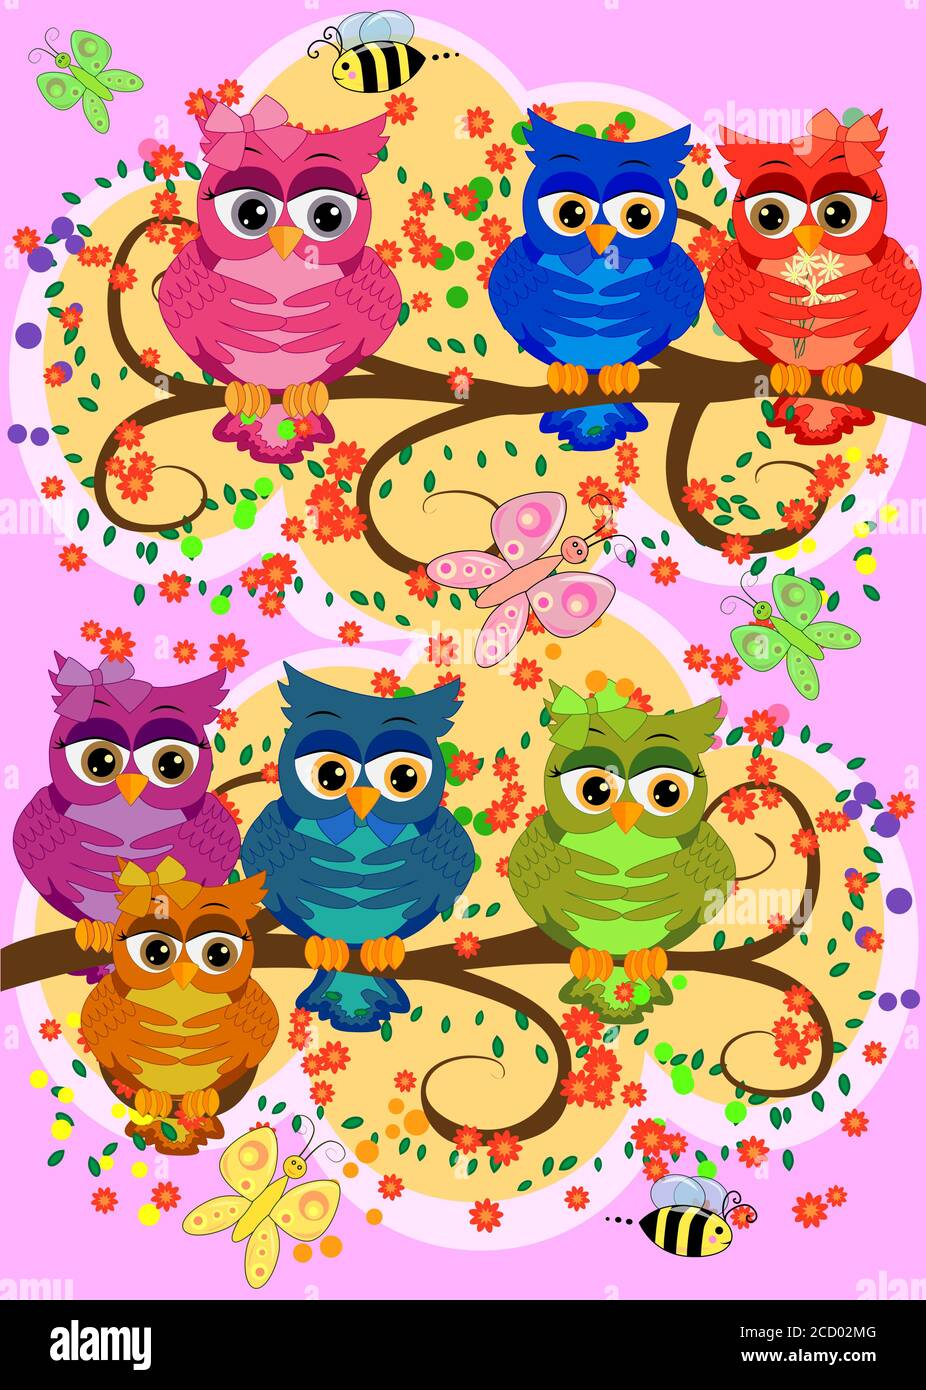 Three cute colorful cartoon owls sitting on tree branch with flowers. Funny sticker of birds on white background. Stock Vector